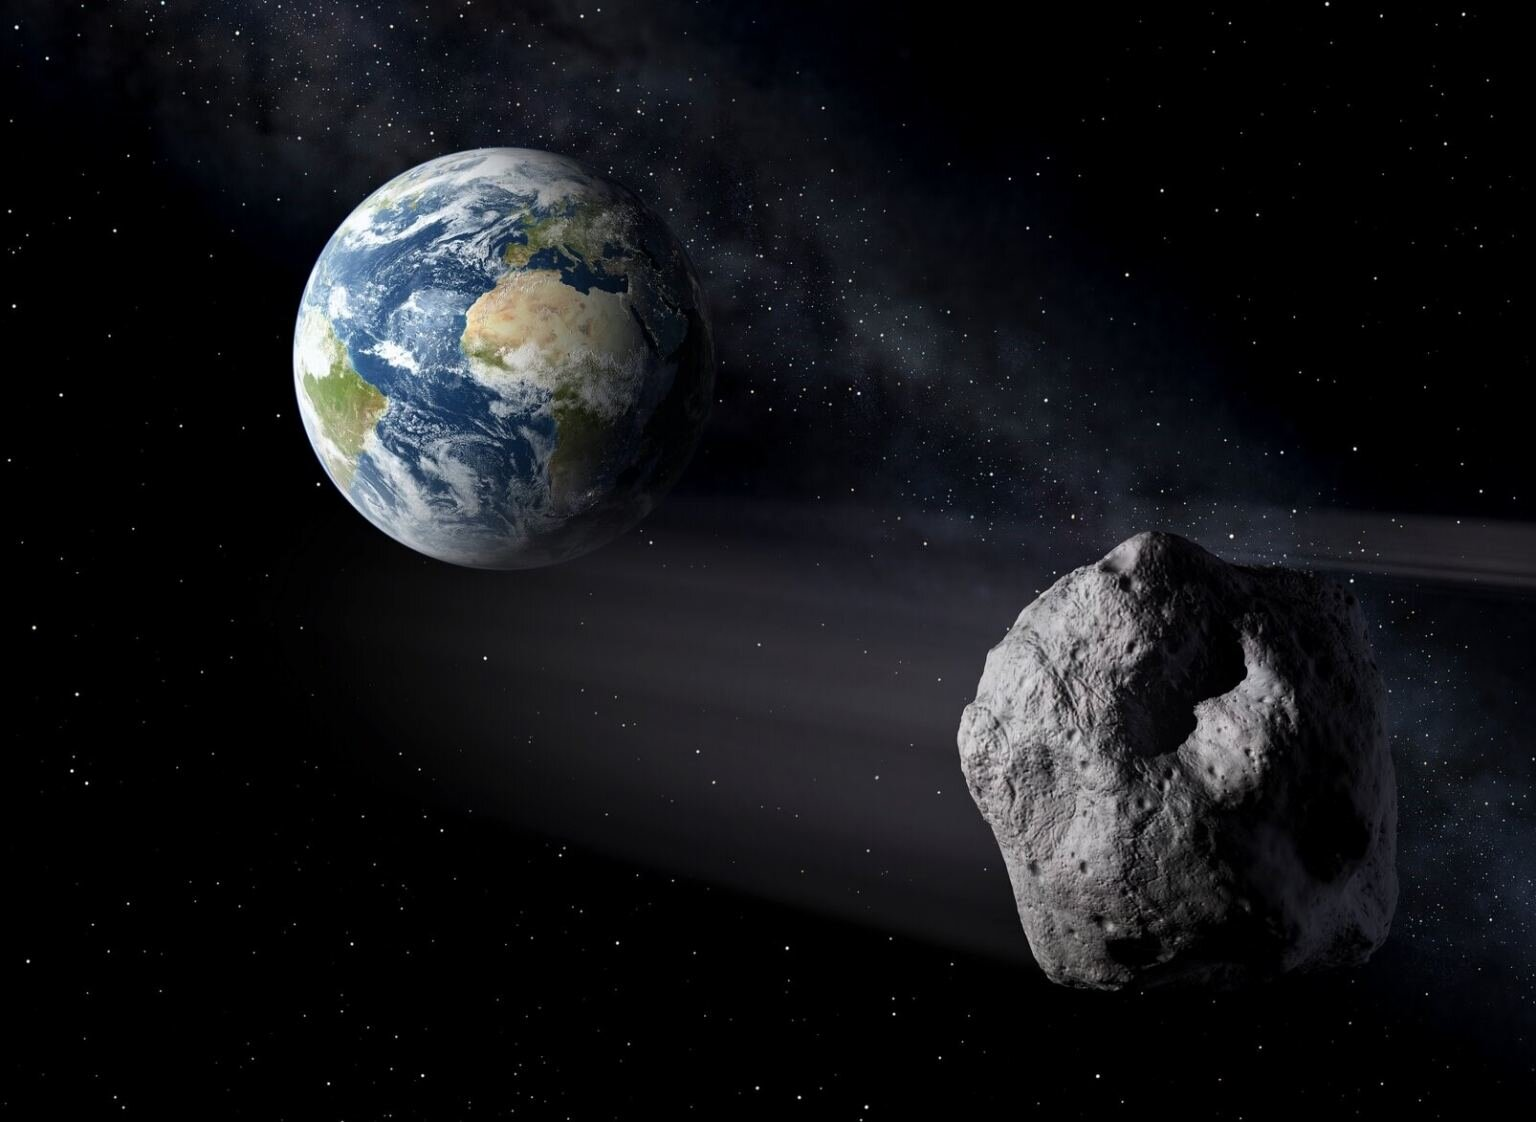 Asteroid 2020 VT4 just skimmed by Earth